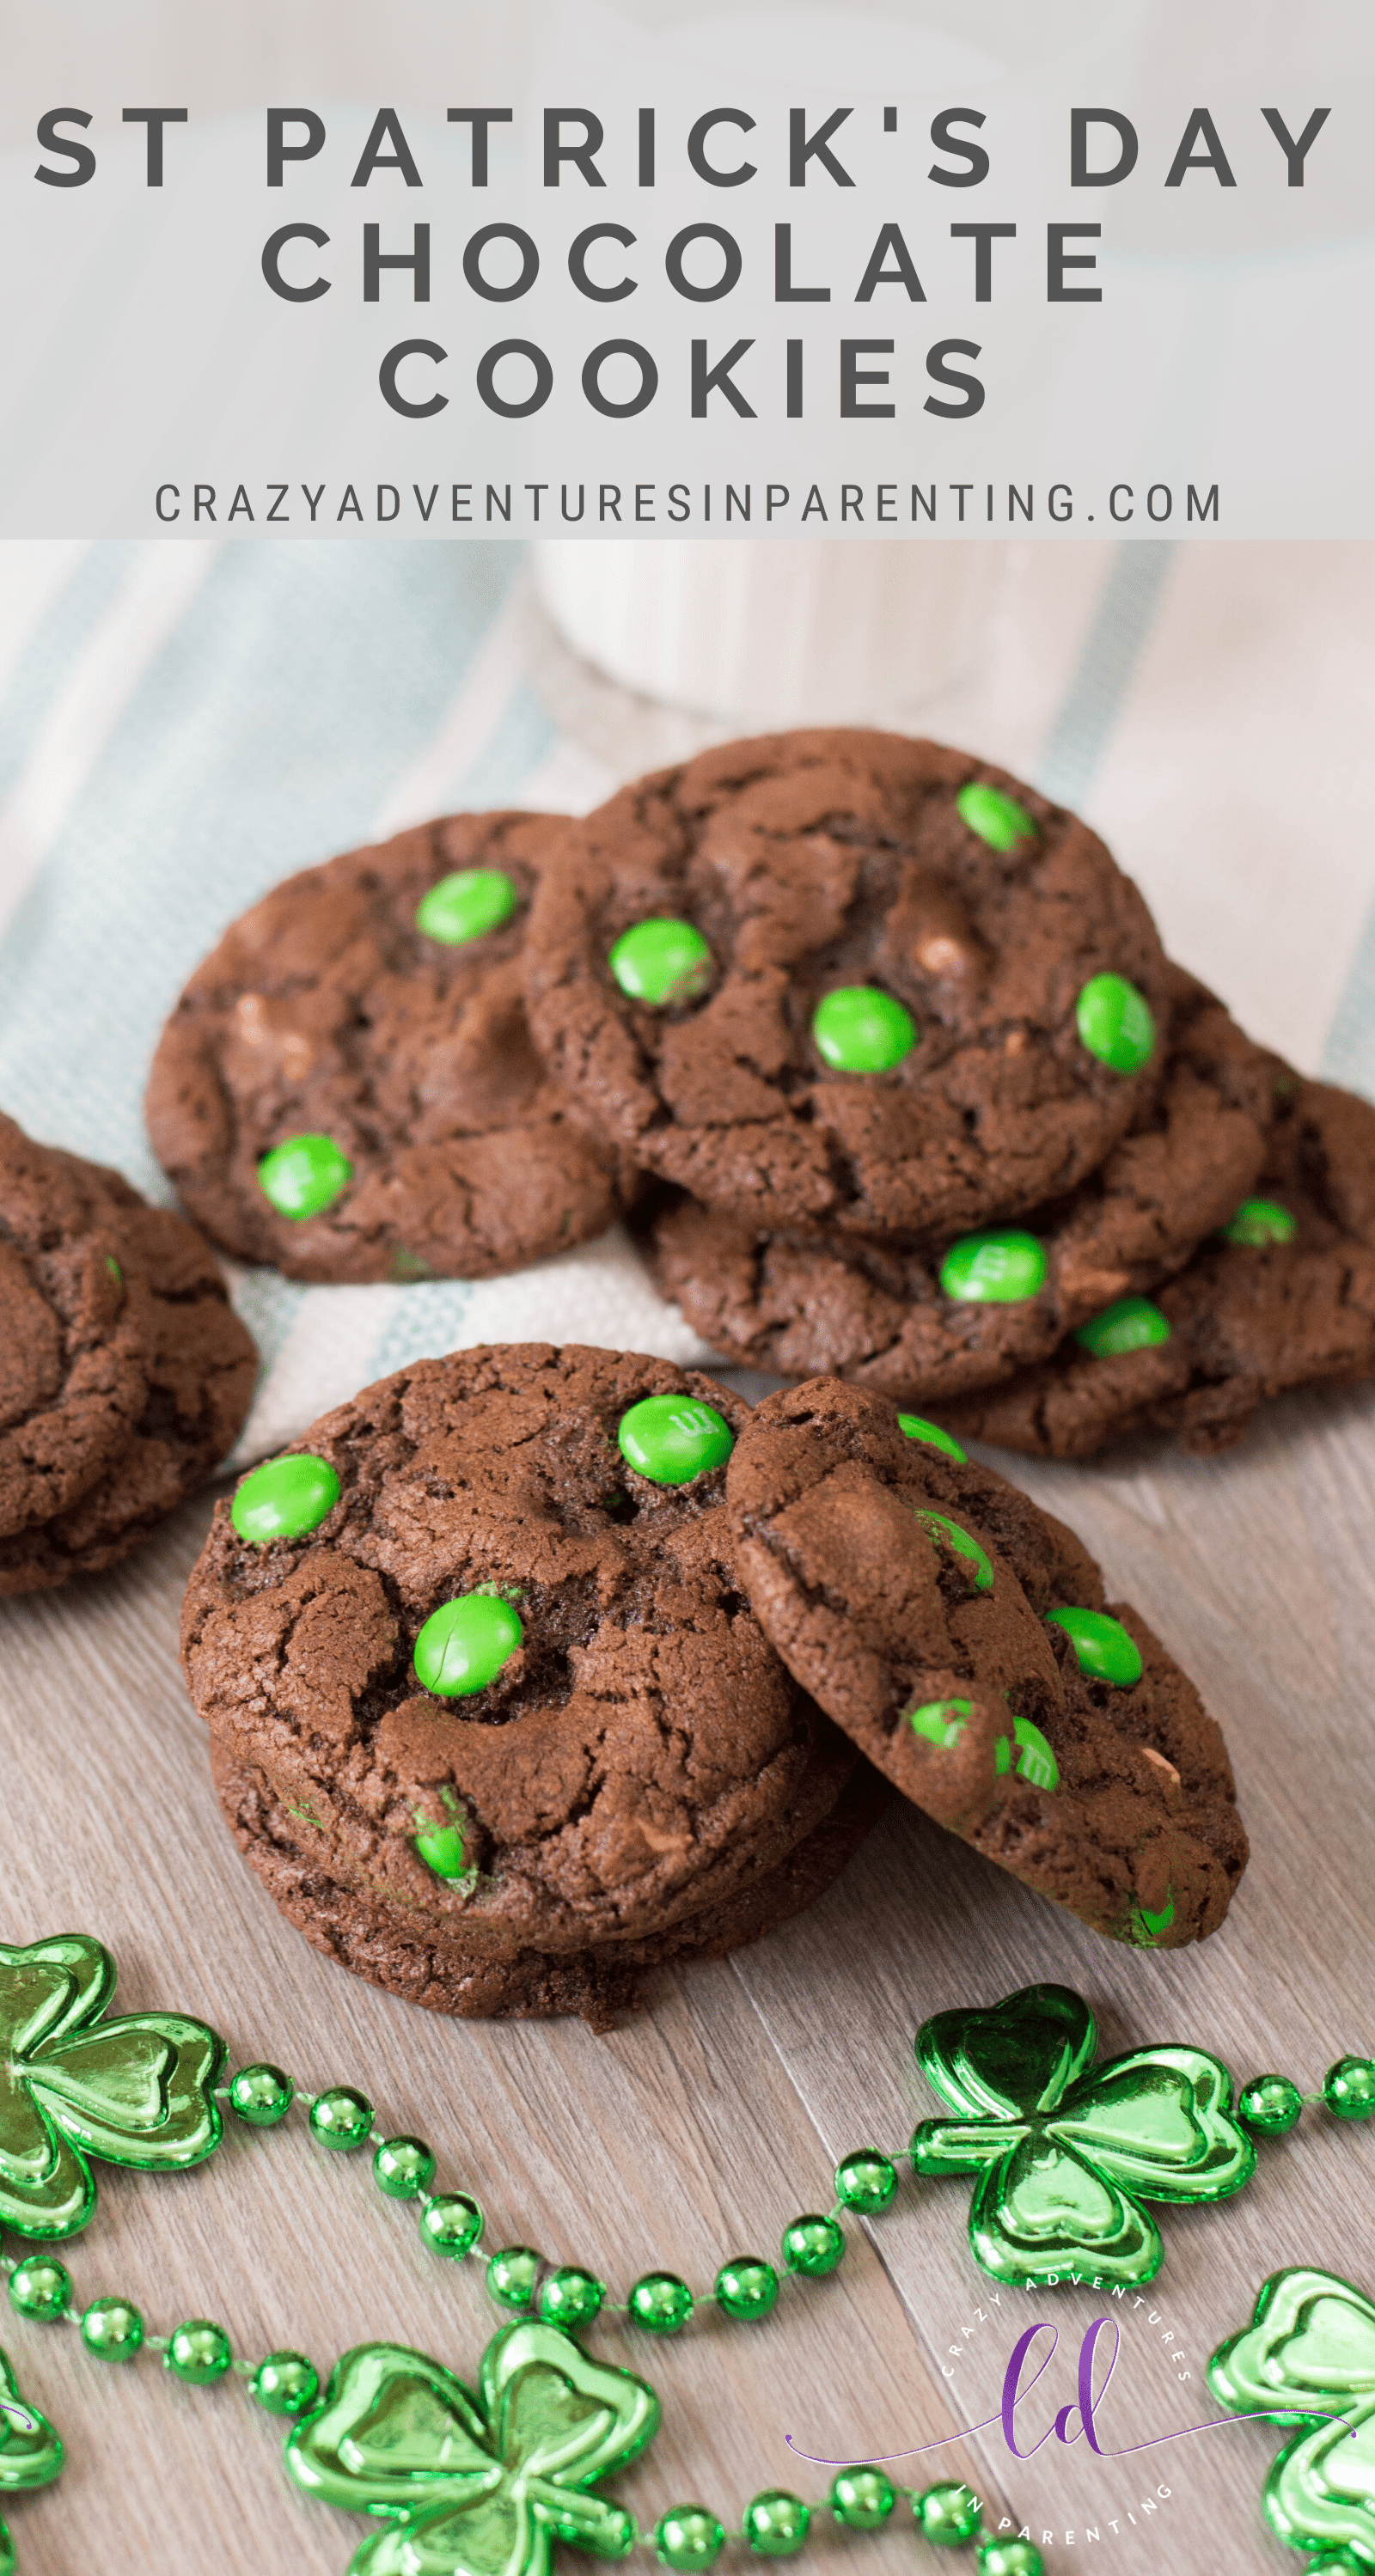 St Patrick's Day Chocolate Cookies